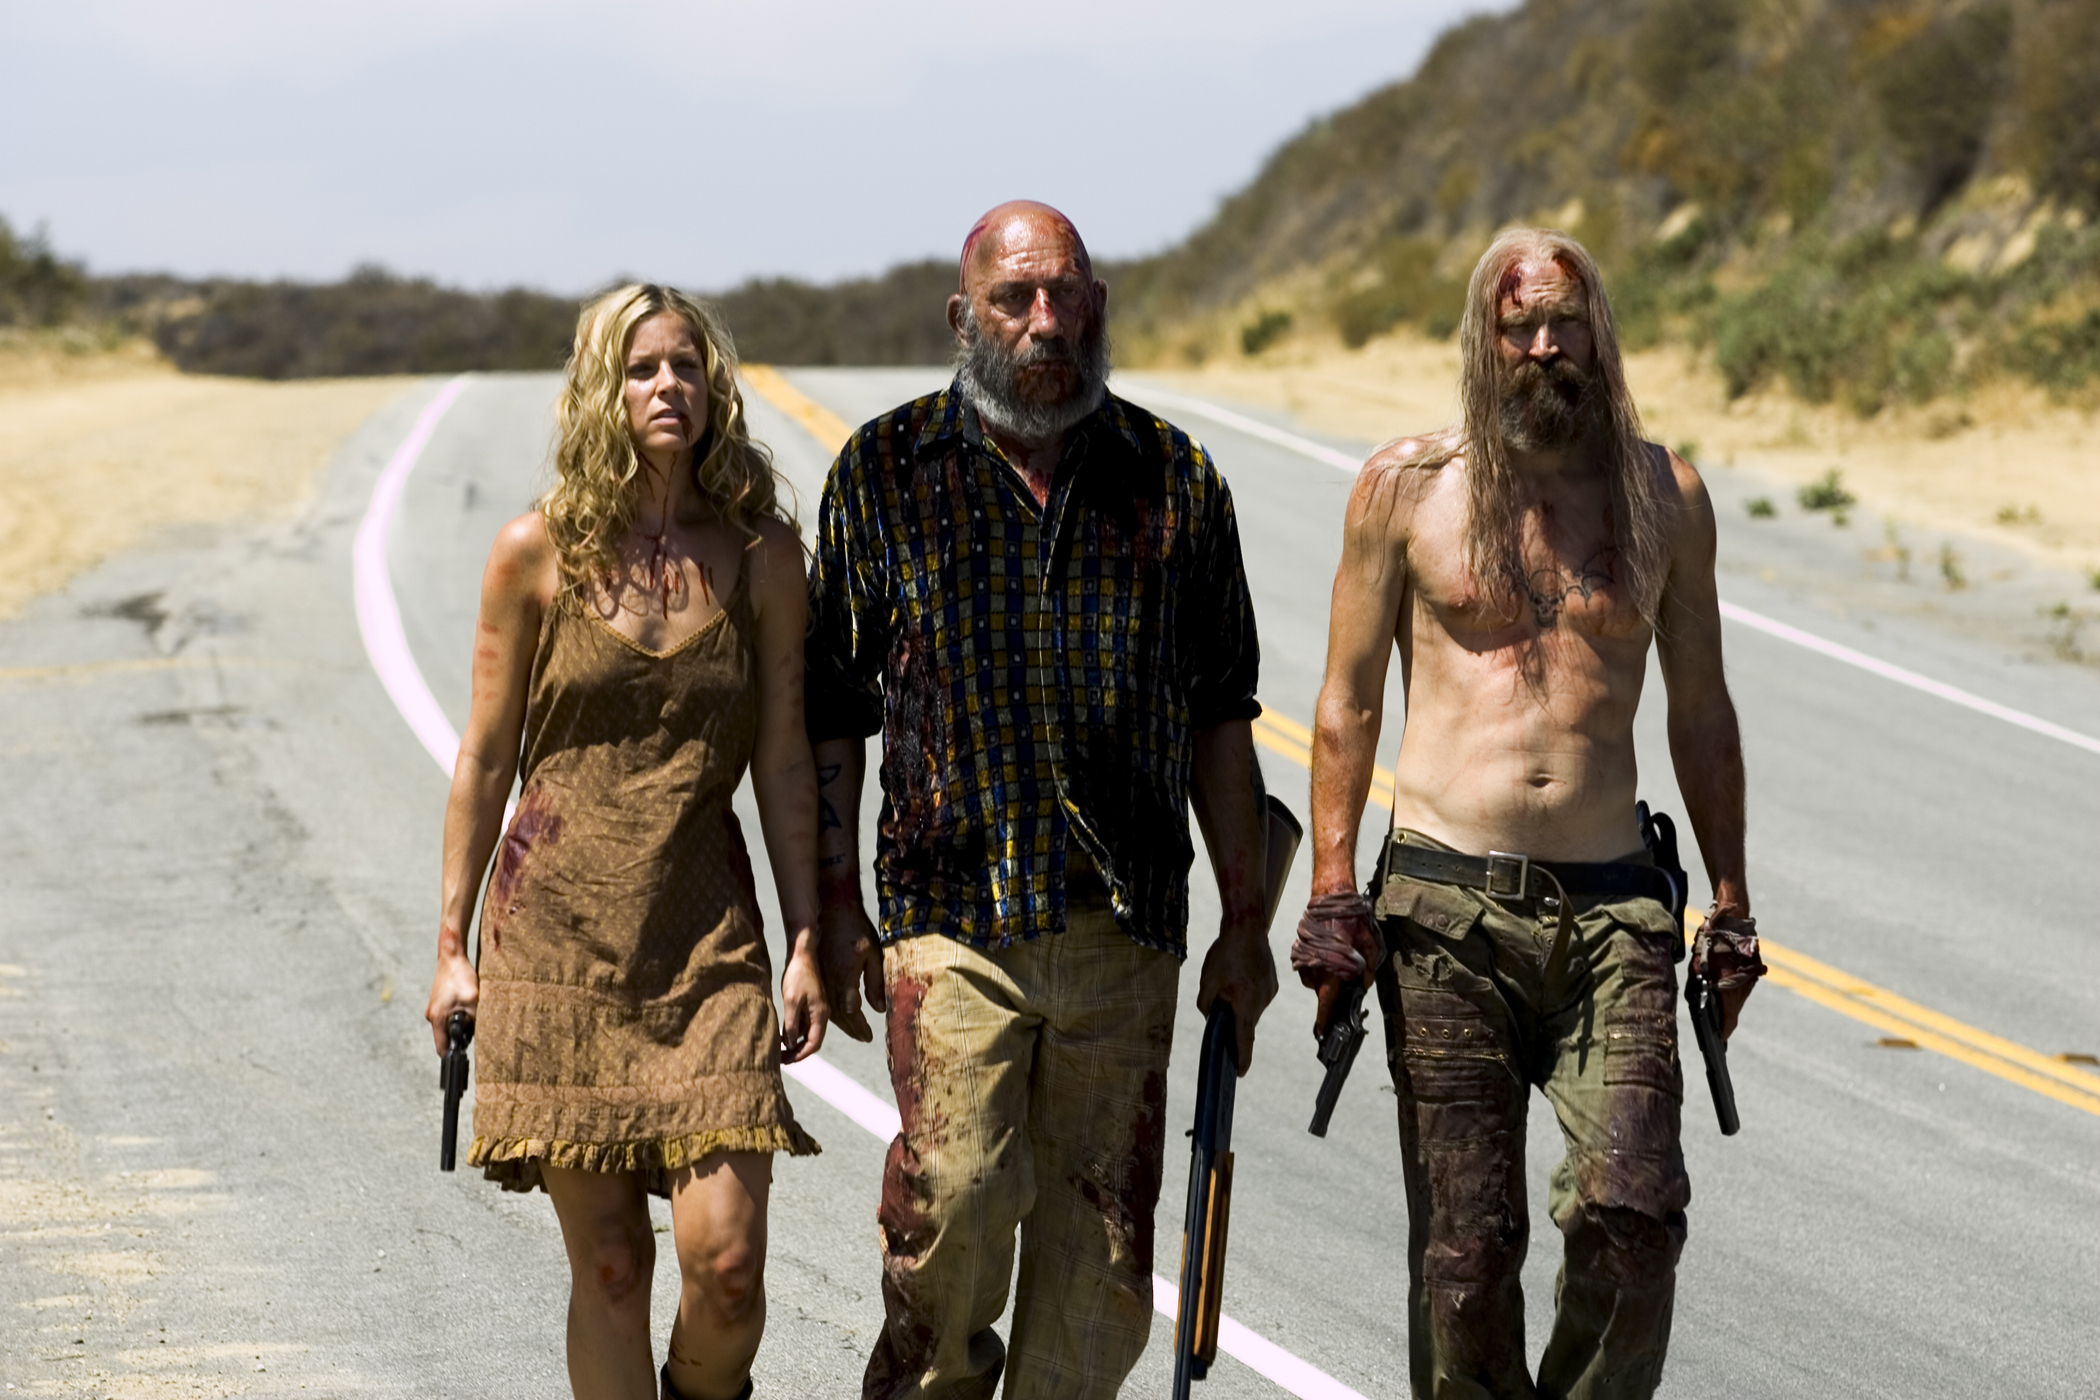 """The Devil's Rejects"", no hay dos sin tres. Fuente: www.miedoenlakeshore.com"